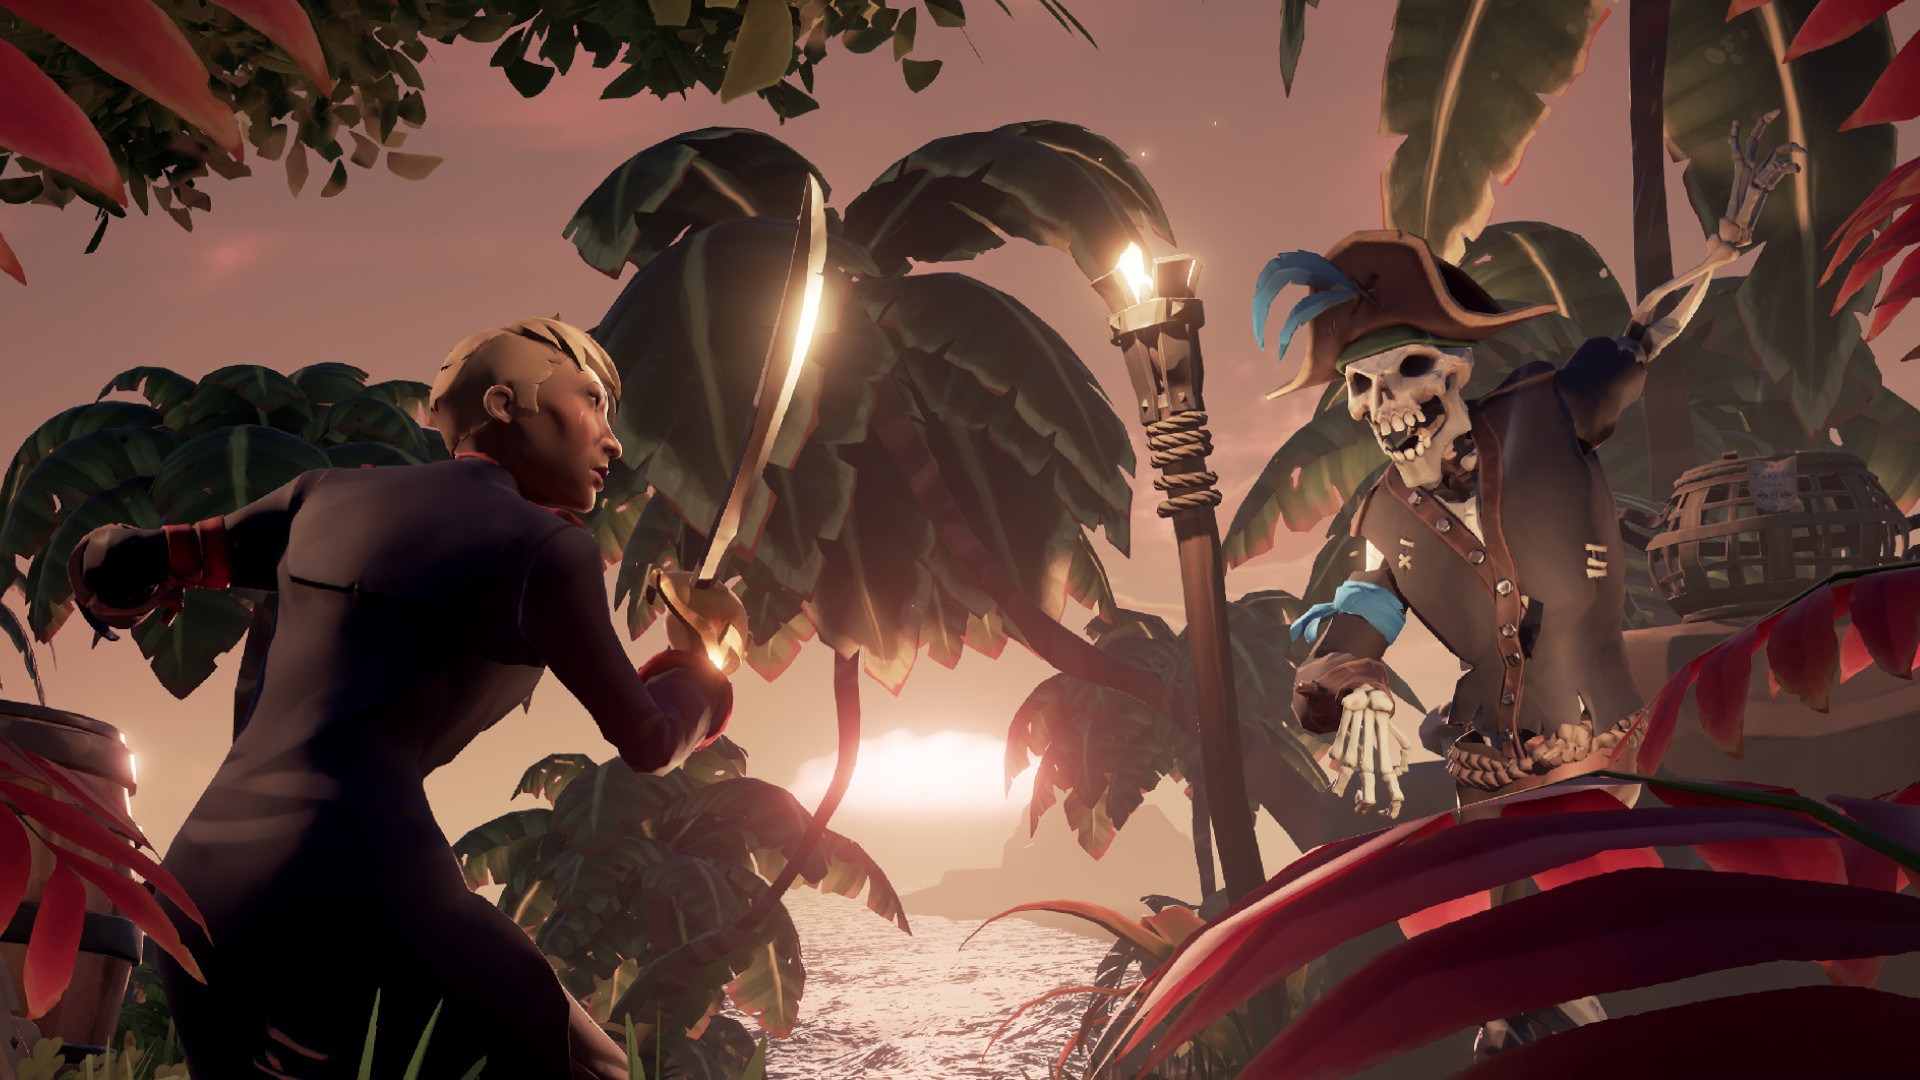 Sea of Thieves now has a 50/50 player split across console and PC